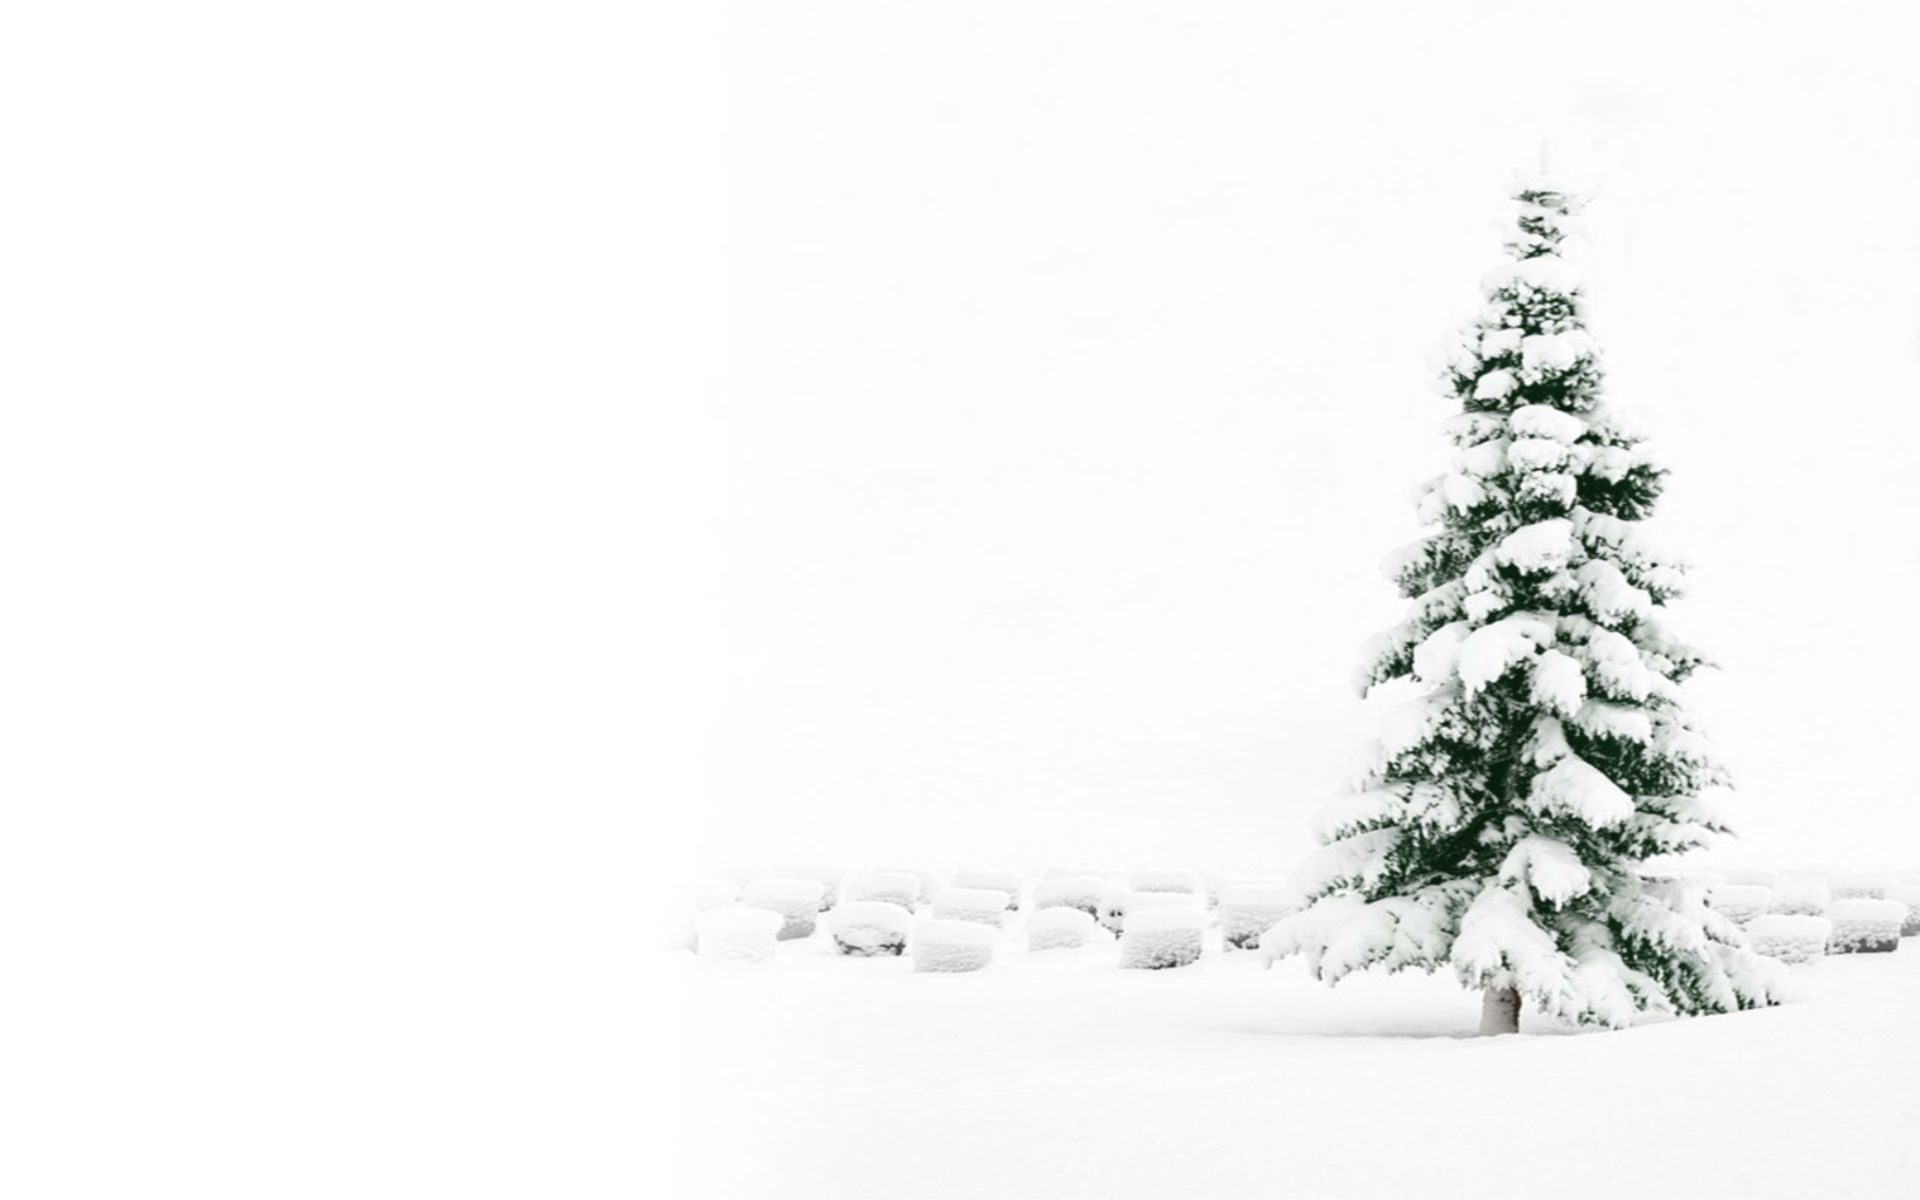 Snowy Christmas Backgrounds 48 Images